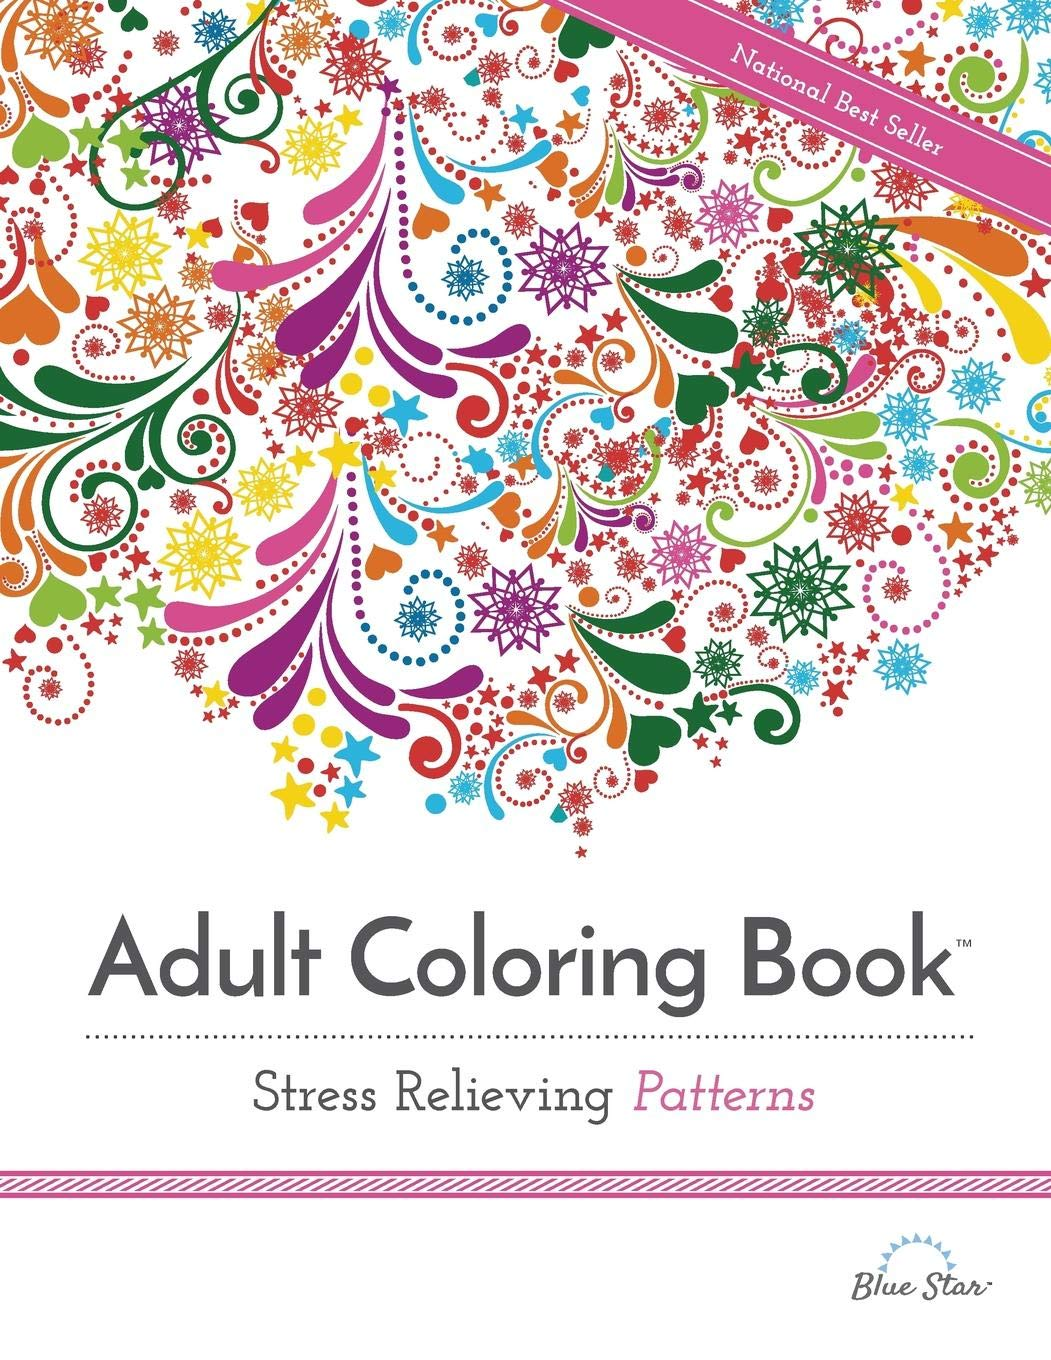 adult coloring book stress relieving patterns adult coloring books best sellers blue star coloring 9781941325124 amazoncom books